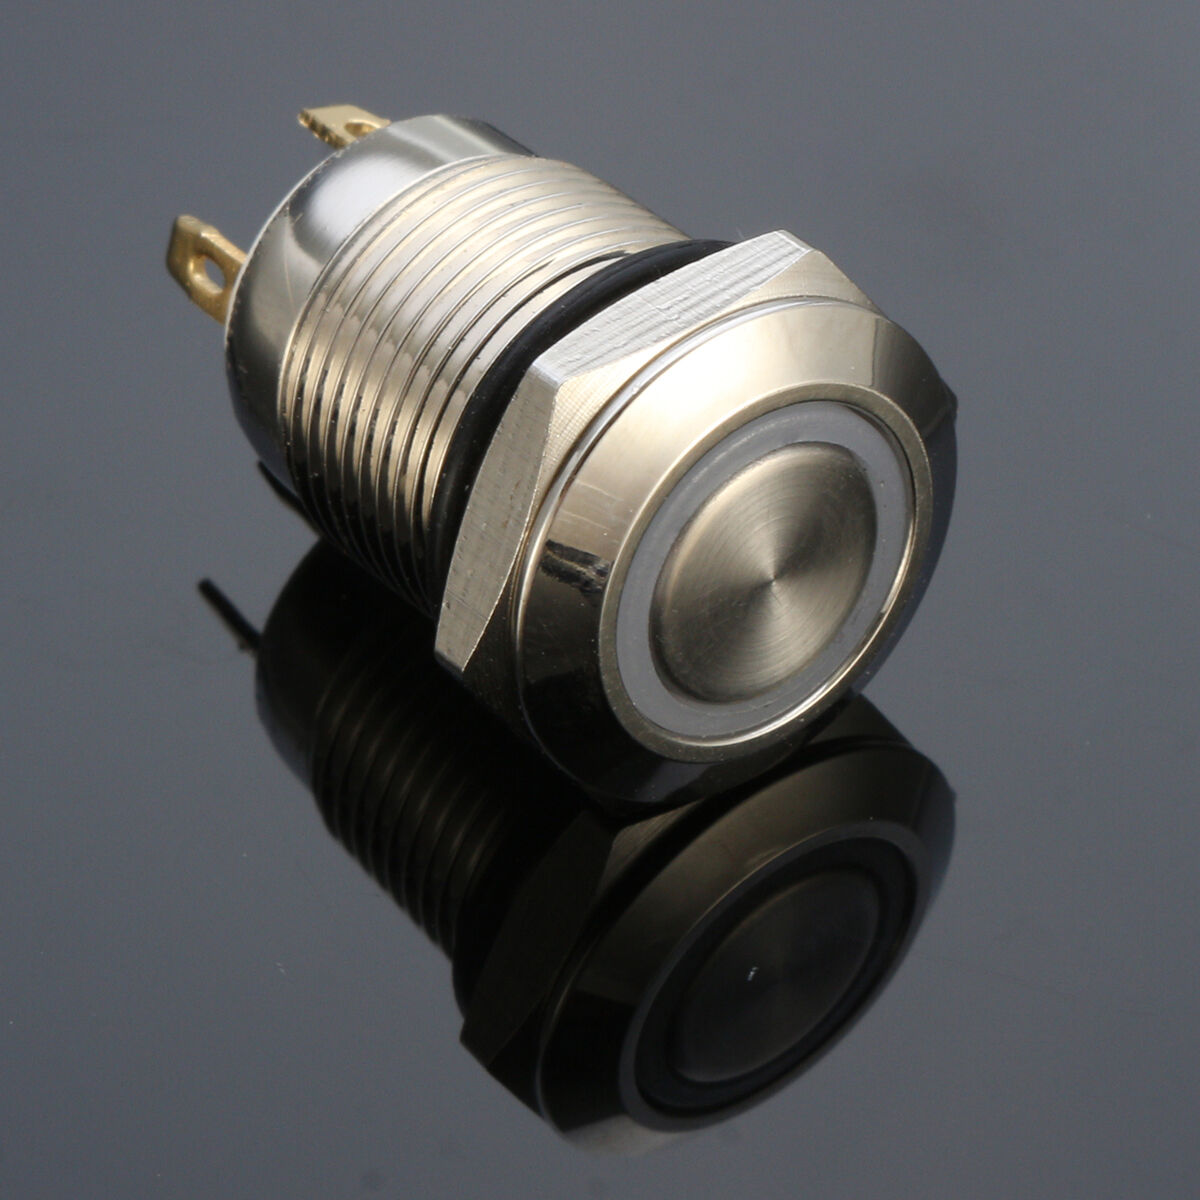 12V Chrome 4 Pin Led Light 12mm Metal Push Button Momentary Switch ...